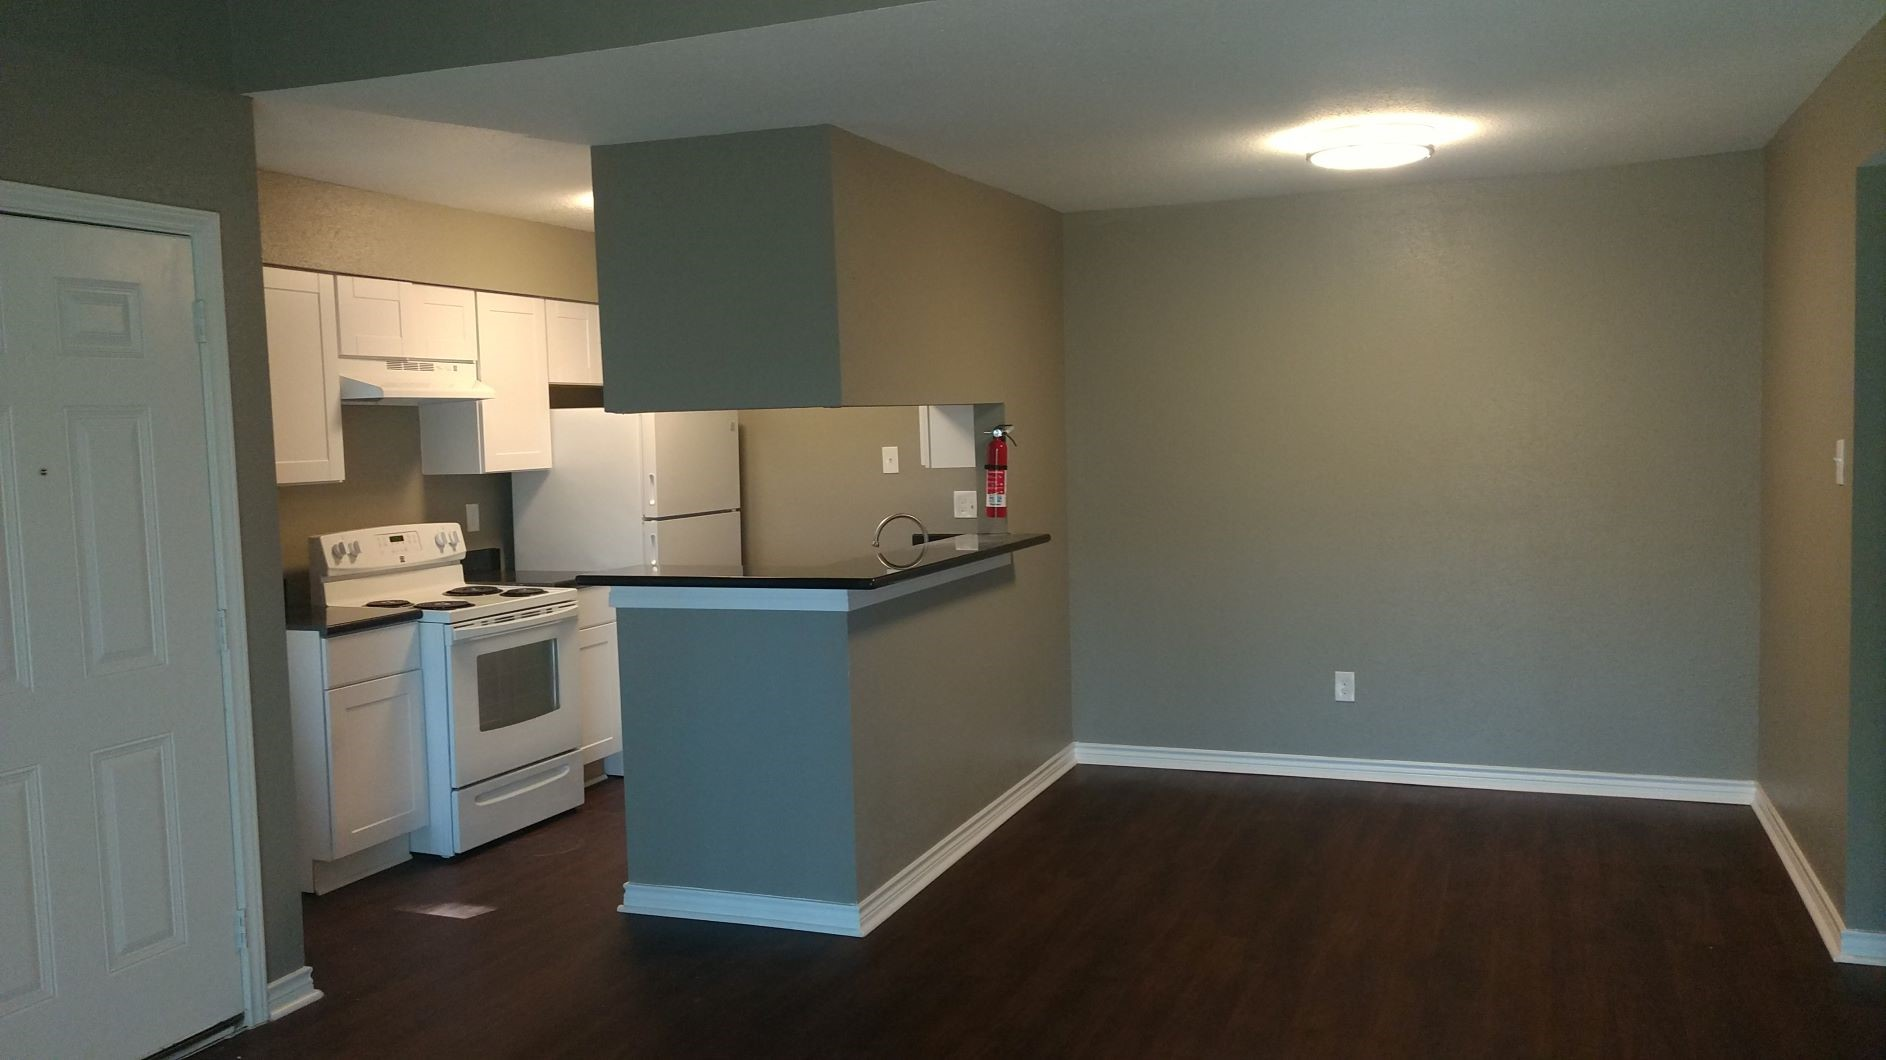 Upgraded 2 bed 1 bath at Briar Park Apartments, Houston, Texas